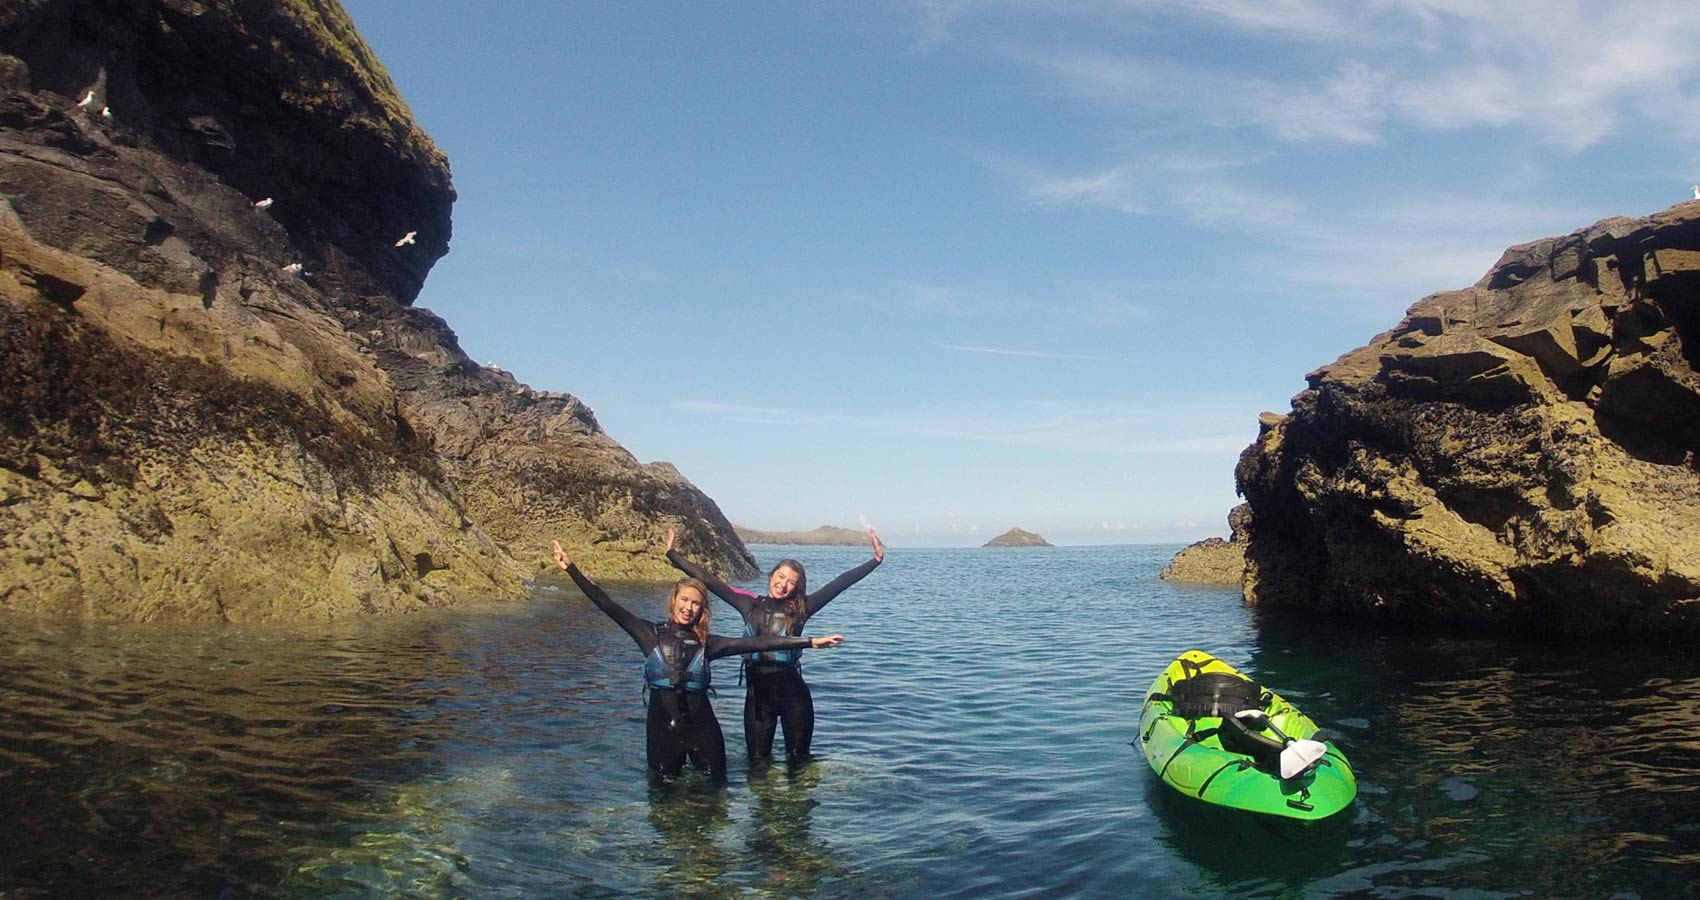 E.g. 'Kayak tours Polzeath, Cornwall'